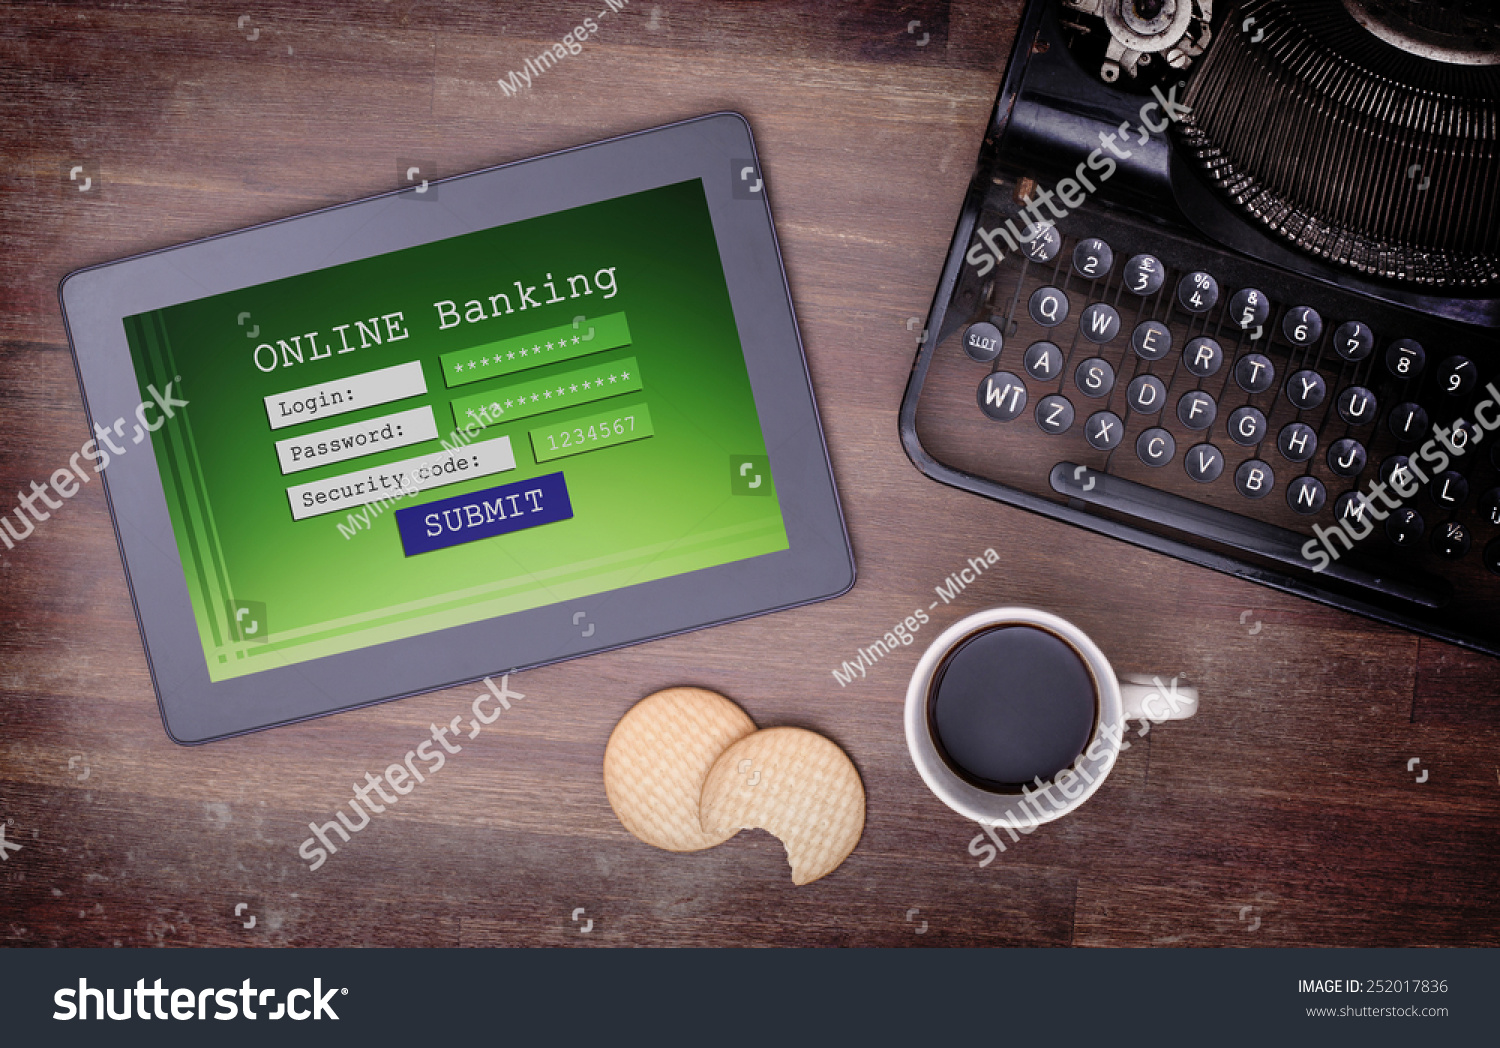 Online Banking On Tablet Login Password Stock Photo (Edit